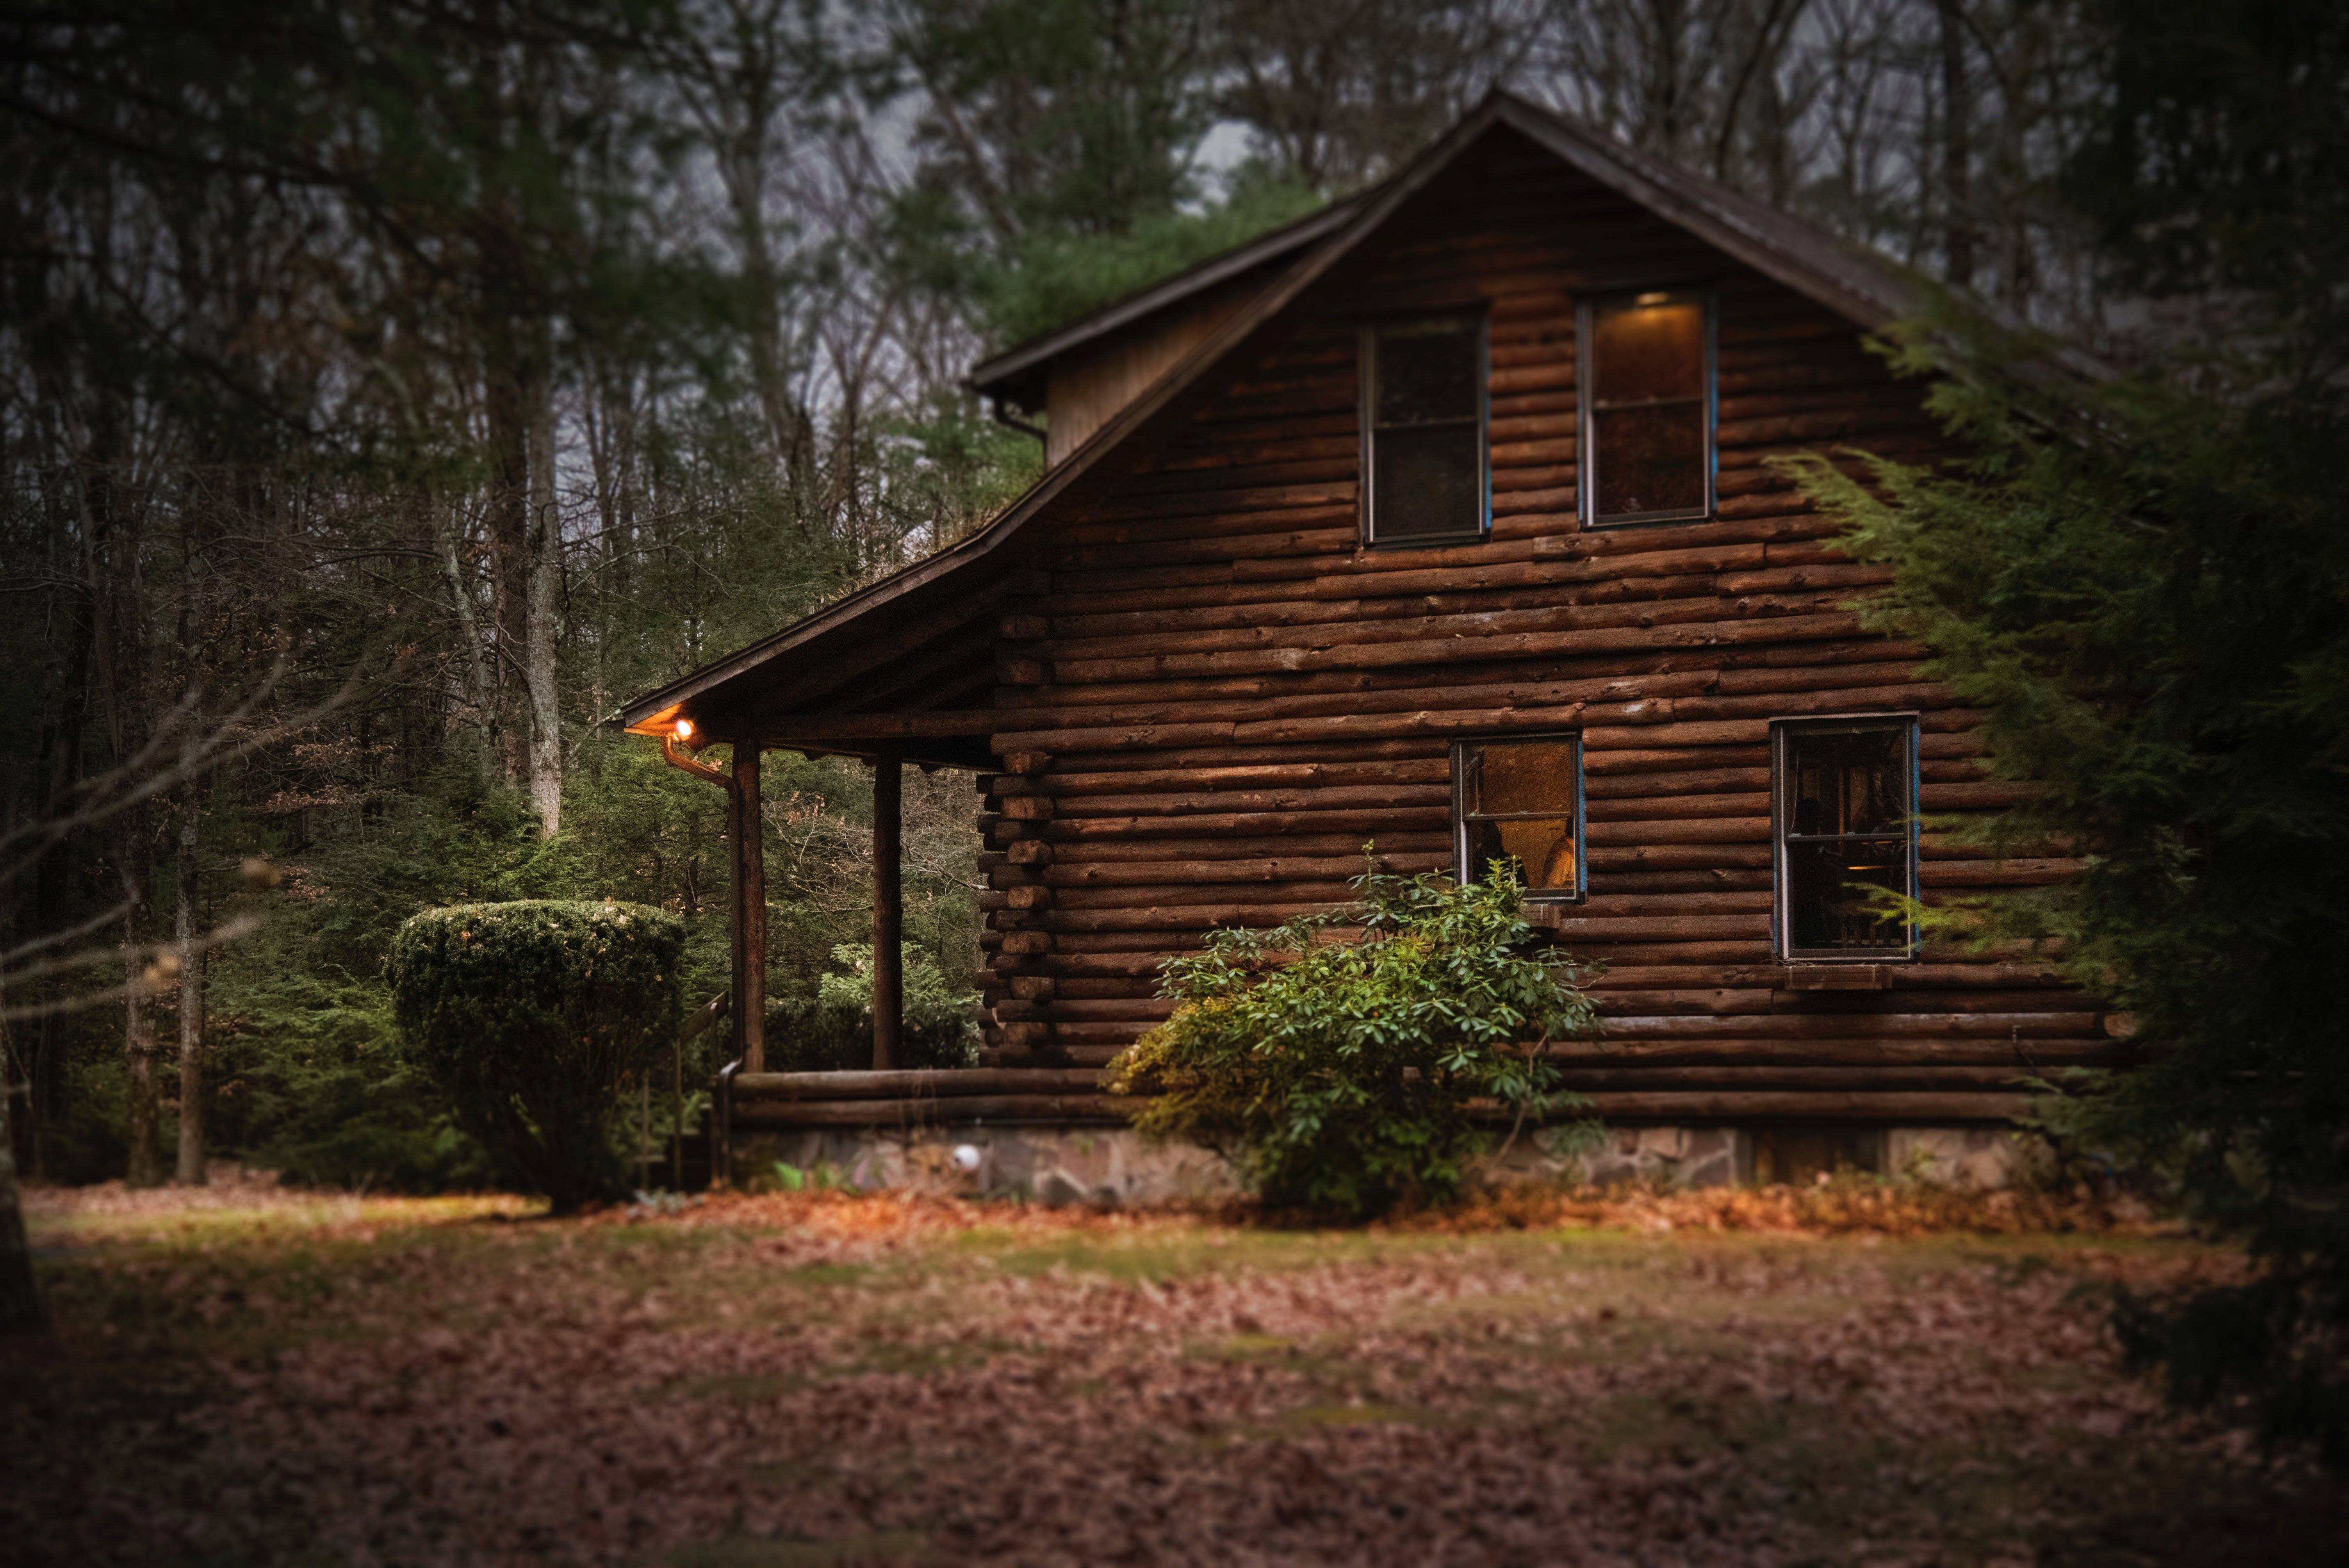 Pictured - A brown cabin in the woods | Source: Pexels